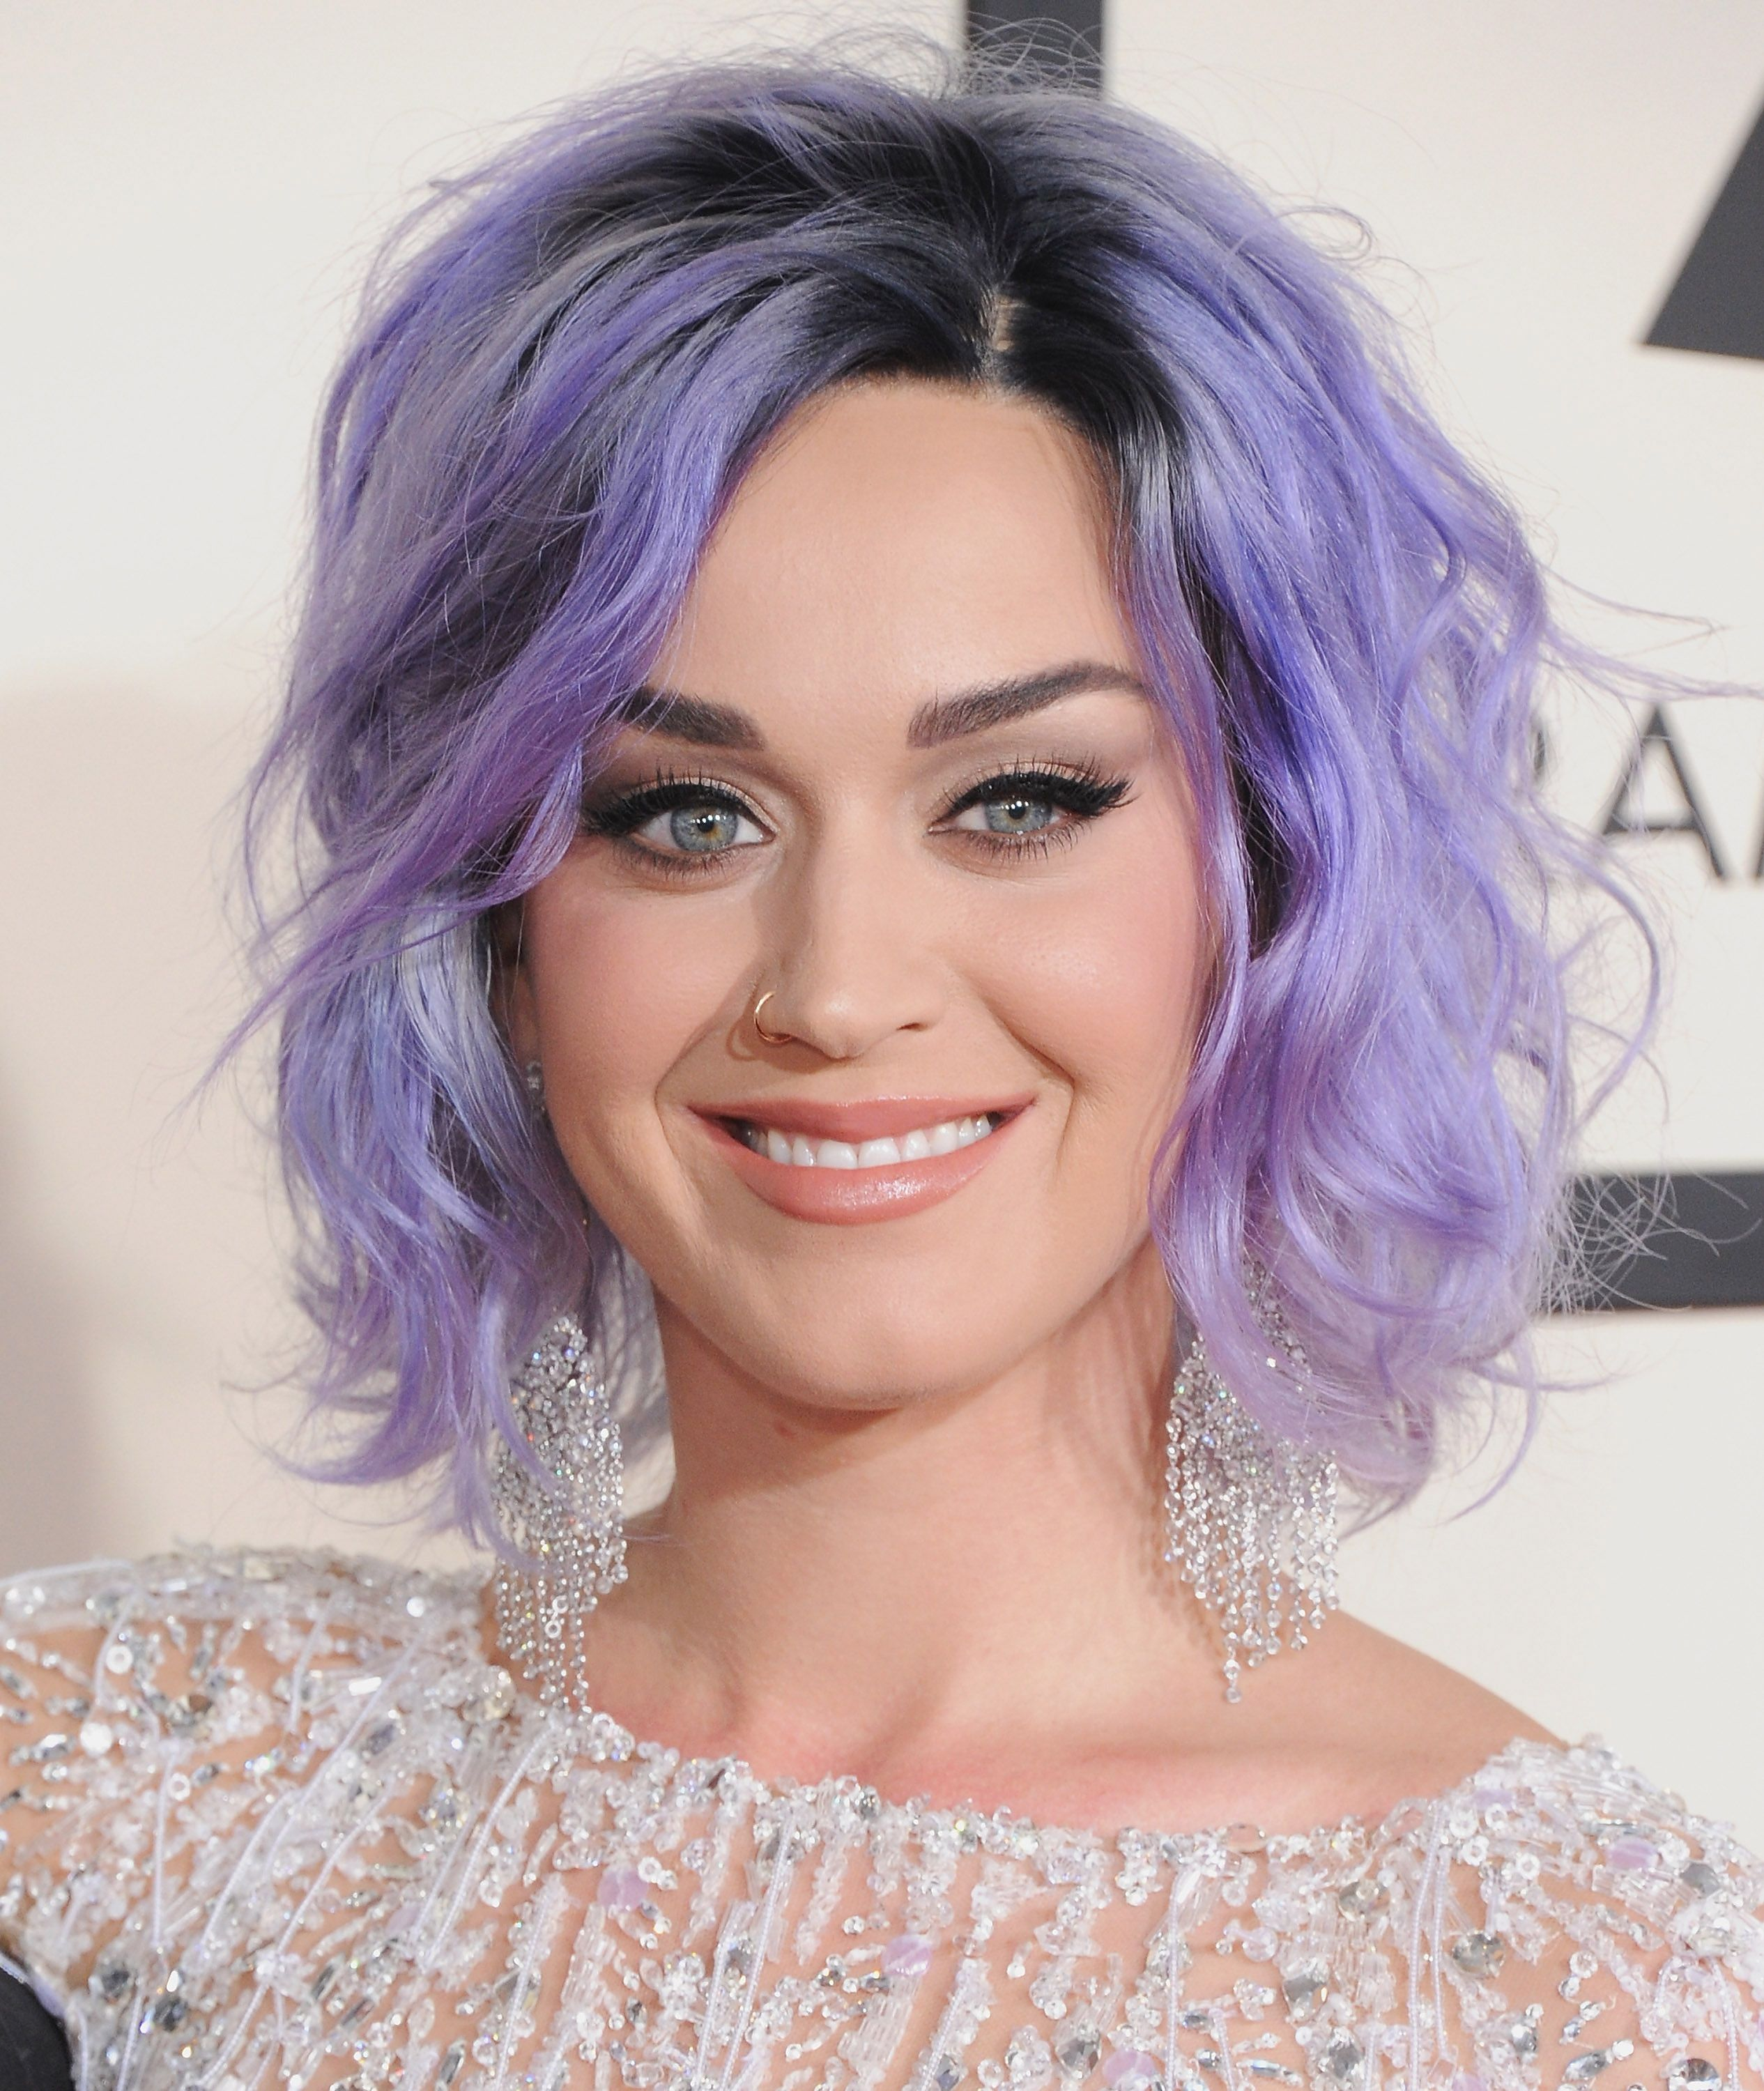 Purple Pink Hair Color Trends On Celebrities In 2015